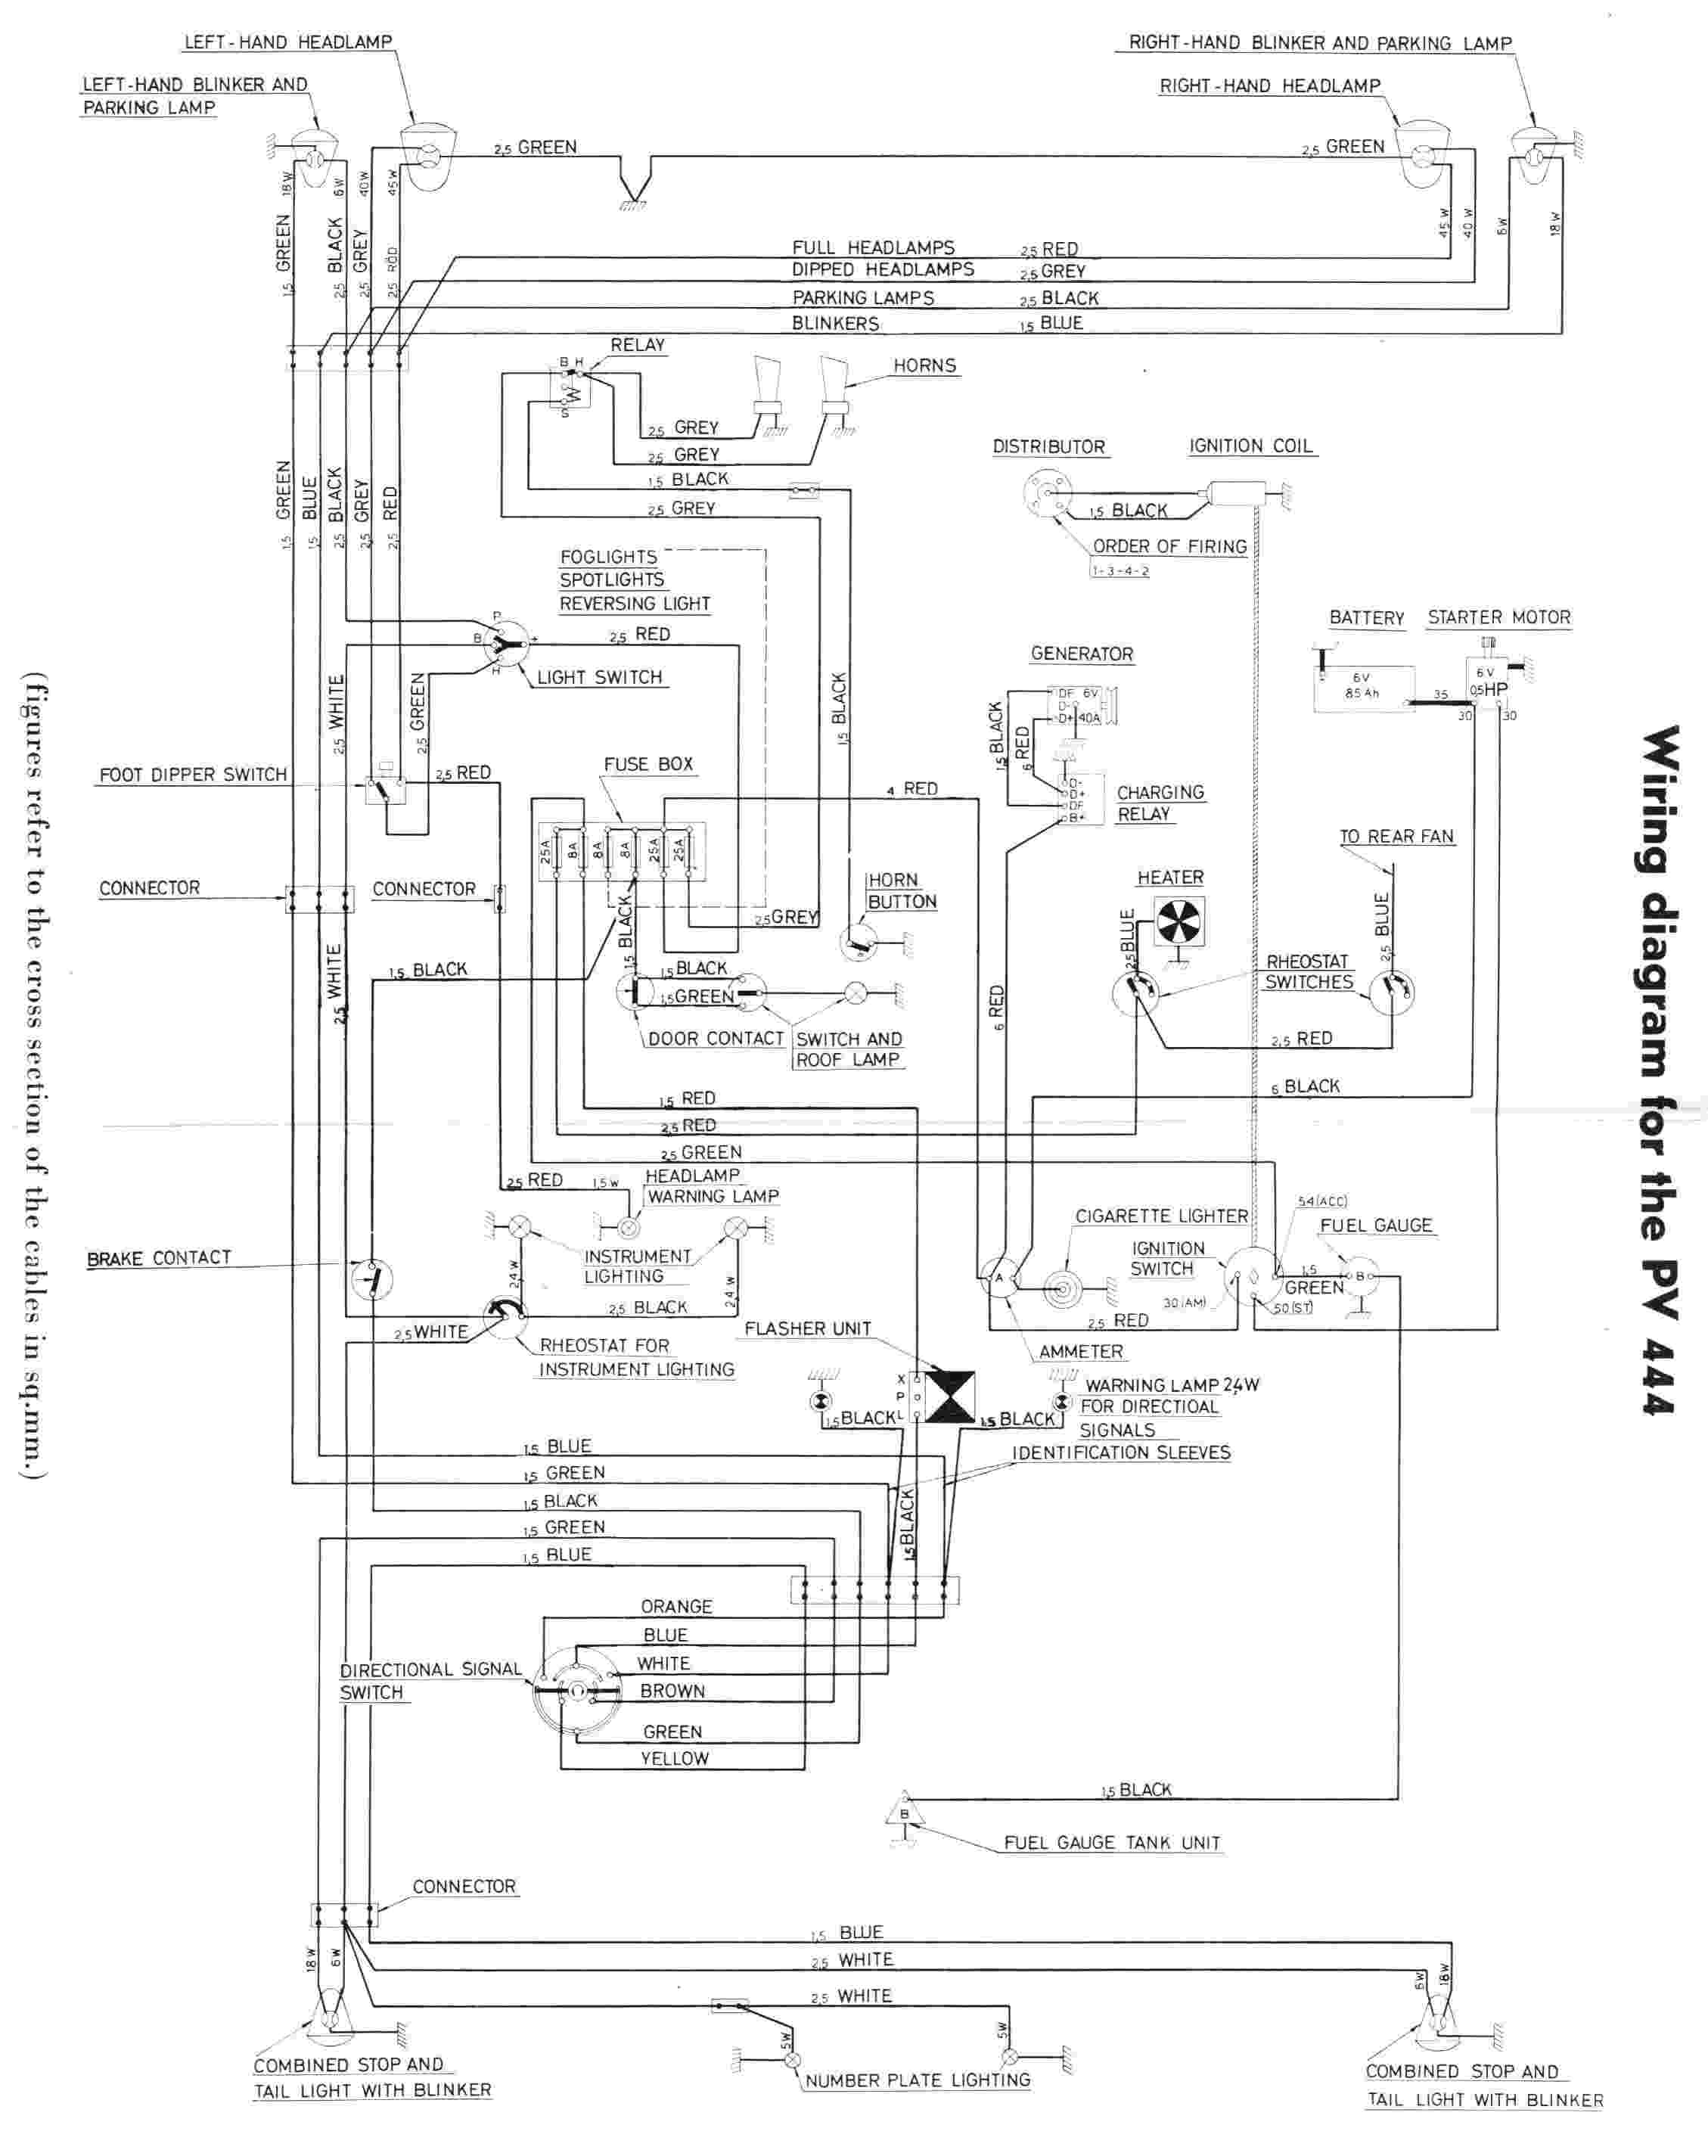 Electrical Wiring Diagrams Automotive Volvo Car Manuals Pdf Fault Codes Download